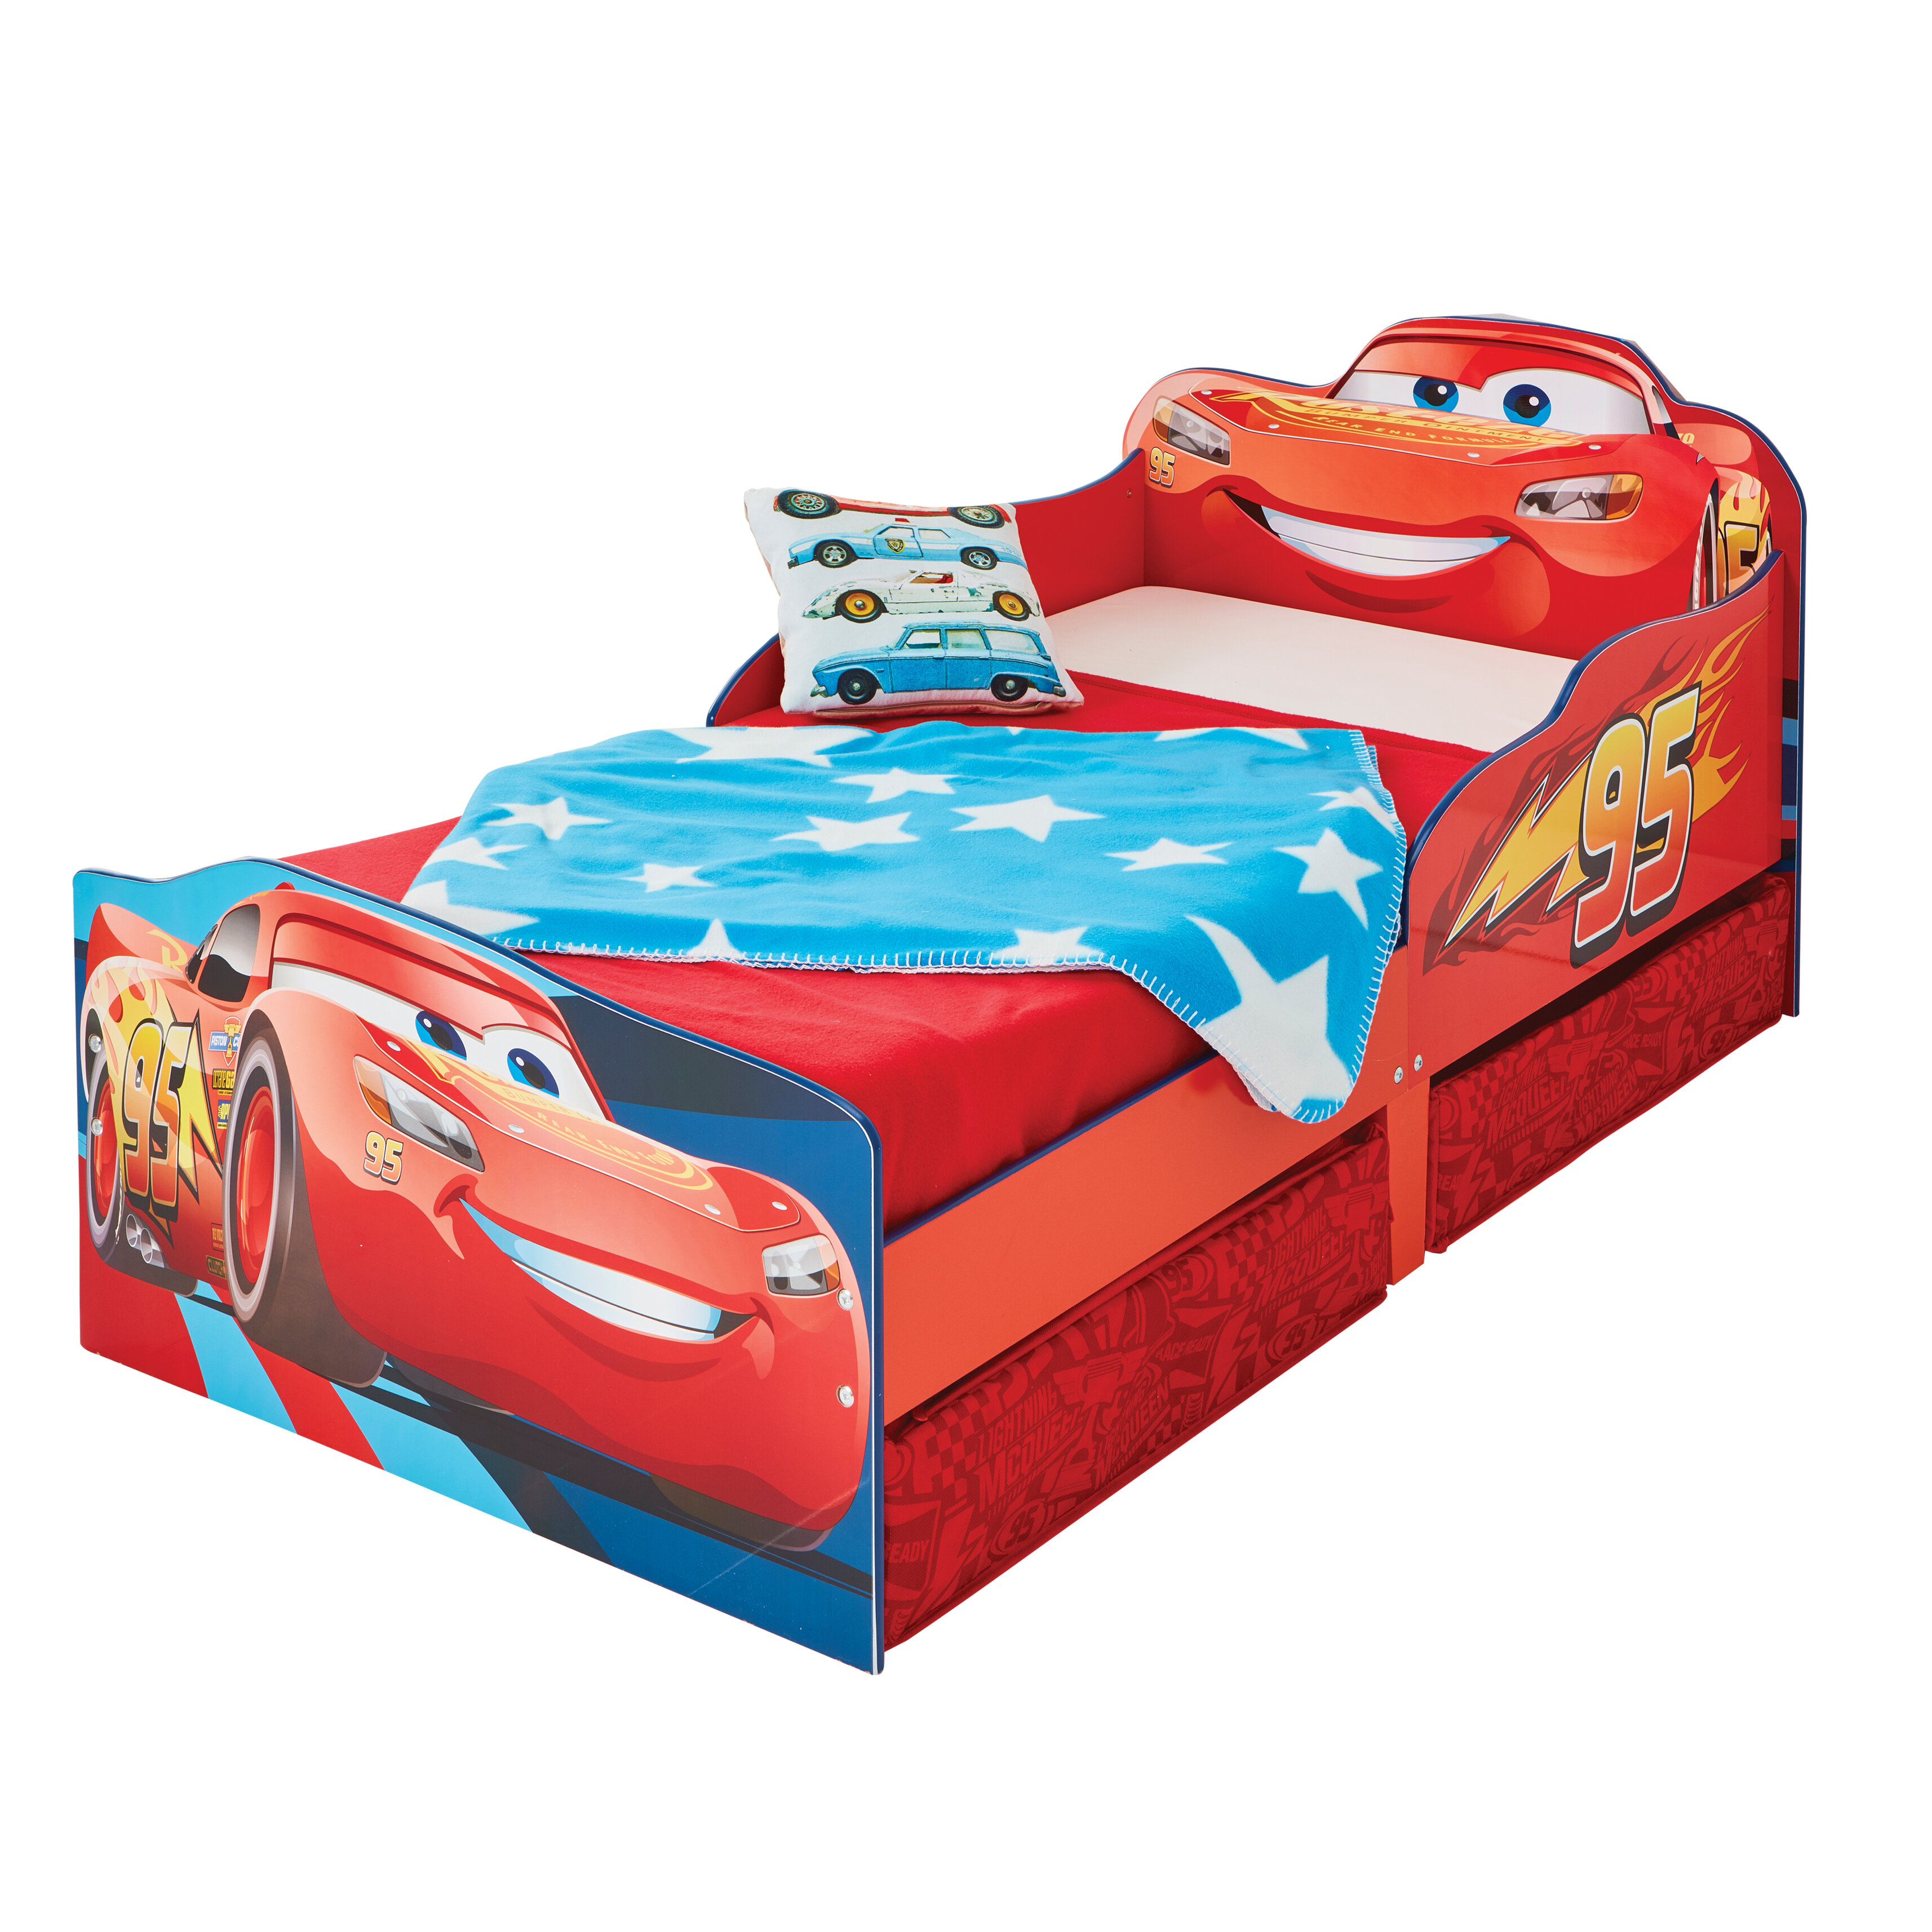 Disney Lightning Mcqueen Toddler Bed With Storage Drawers